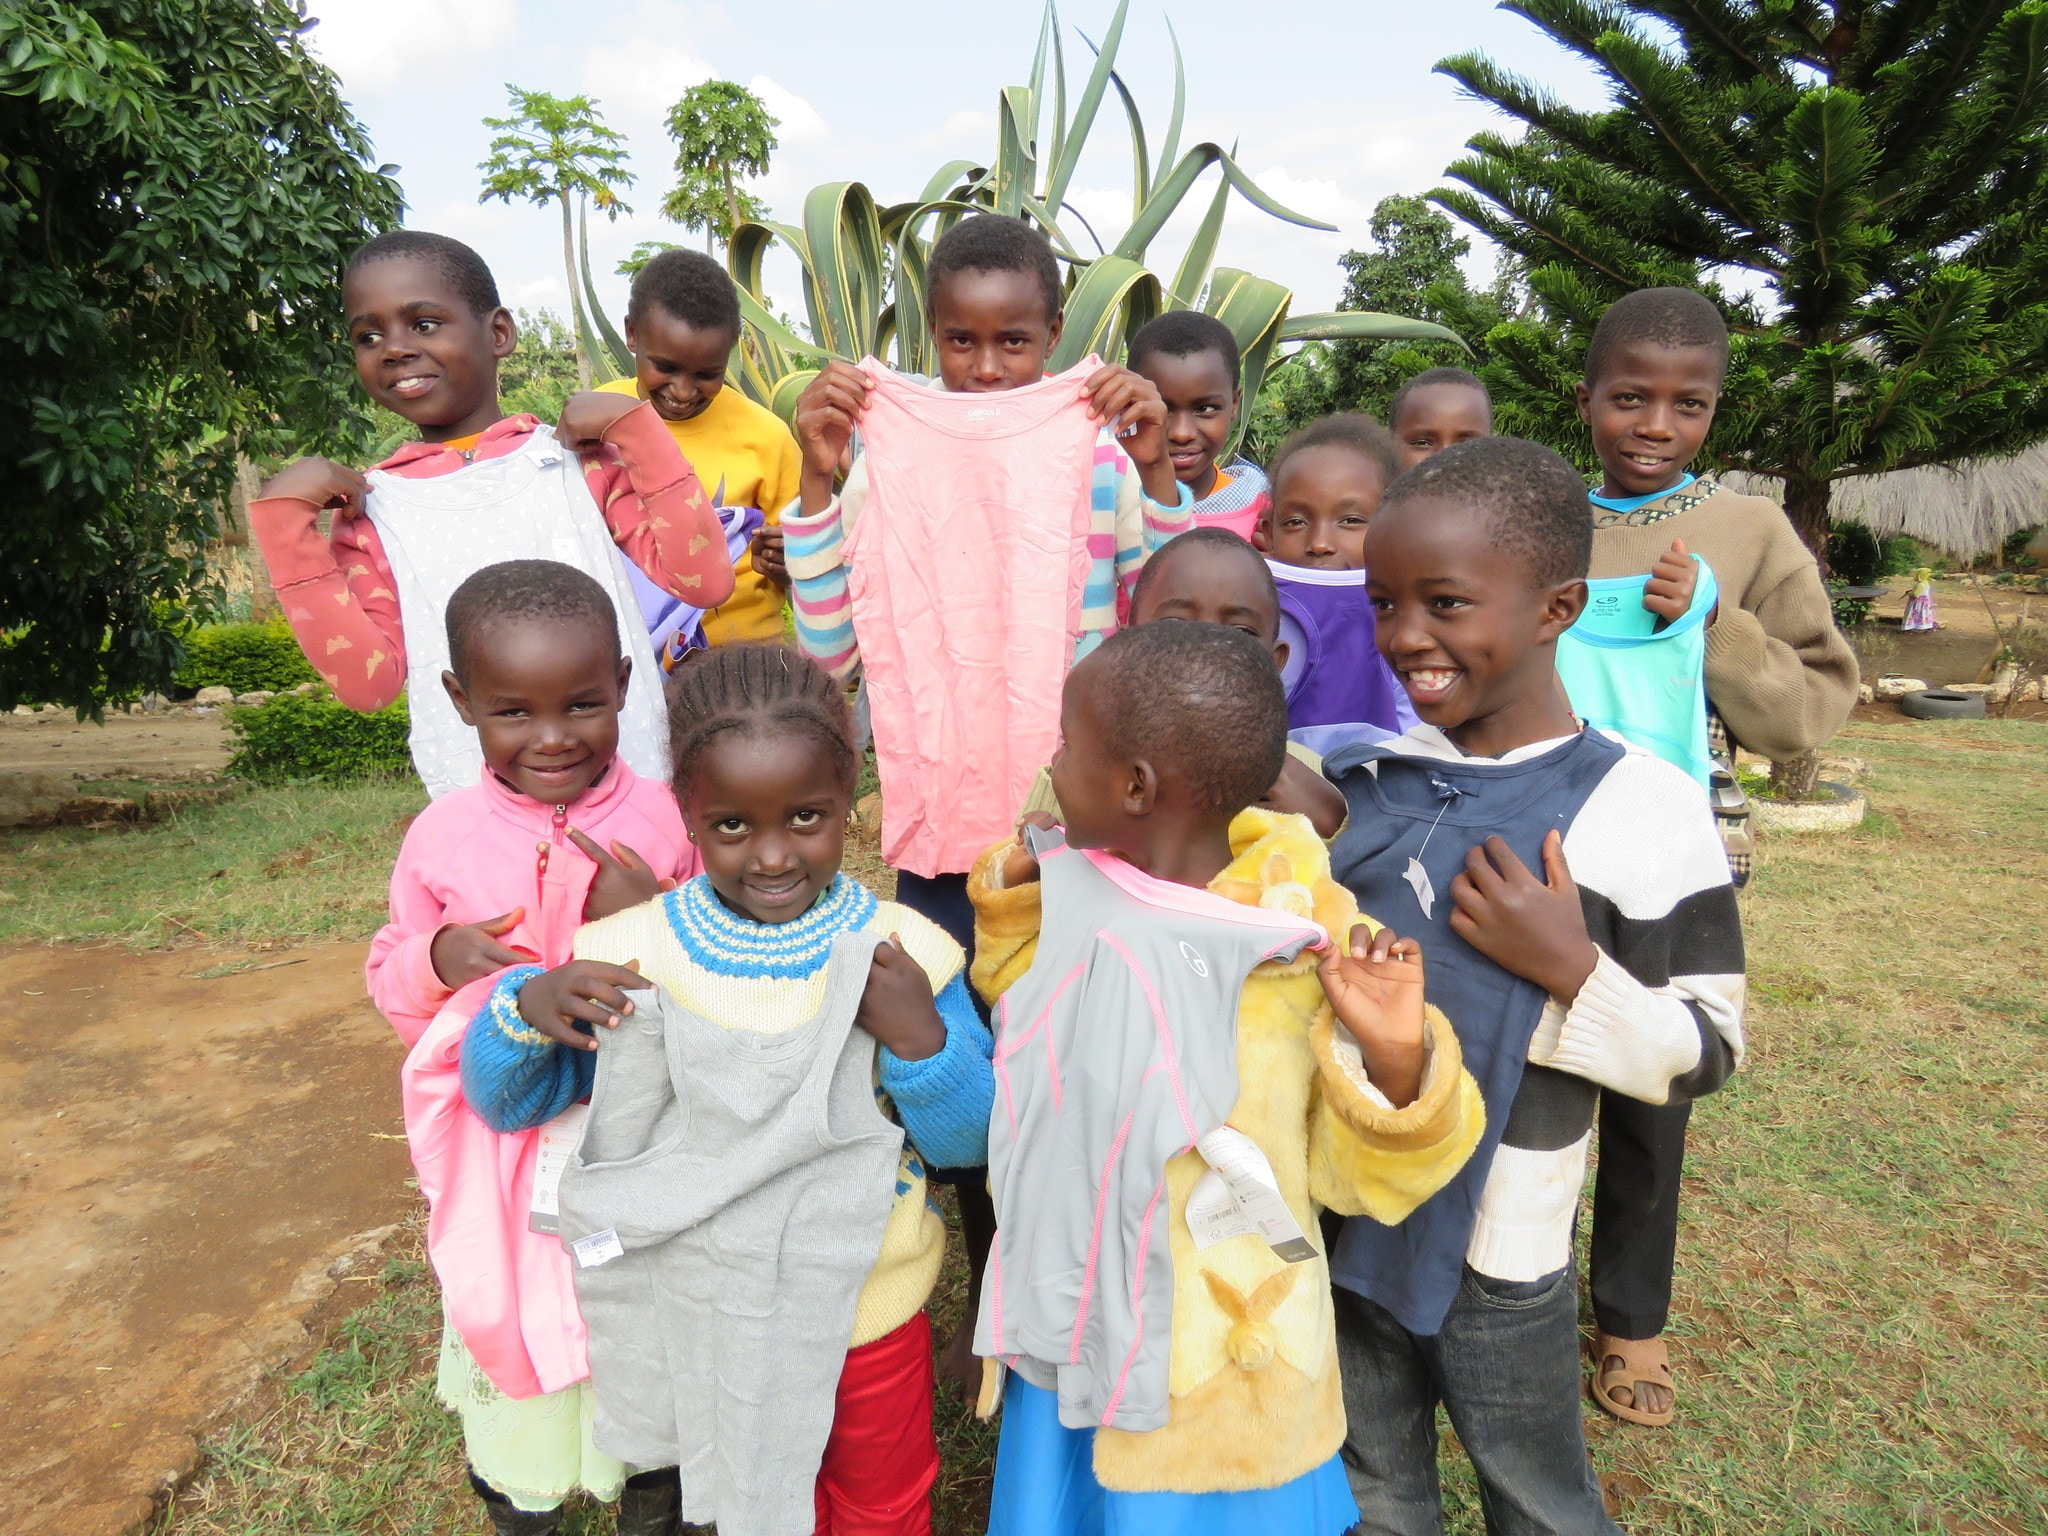 Children from an orphanage receive the gift of clothing from Matanya's Hope donors.